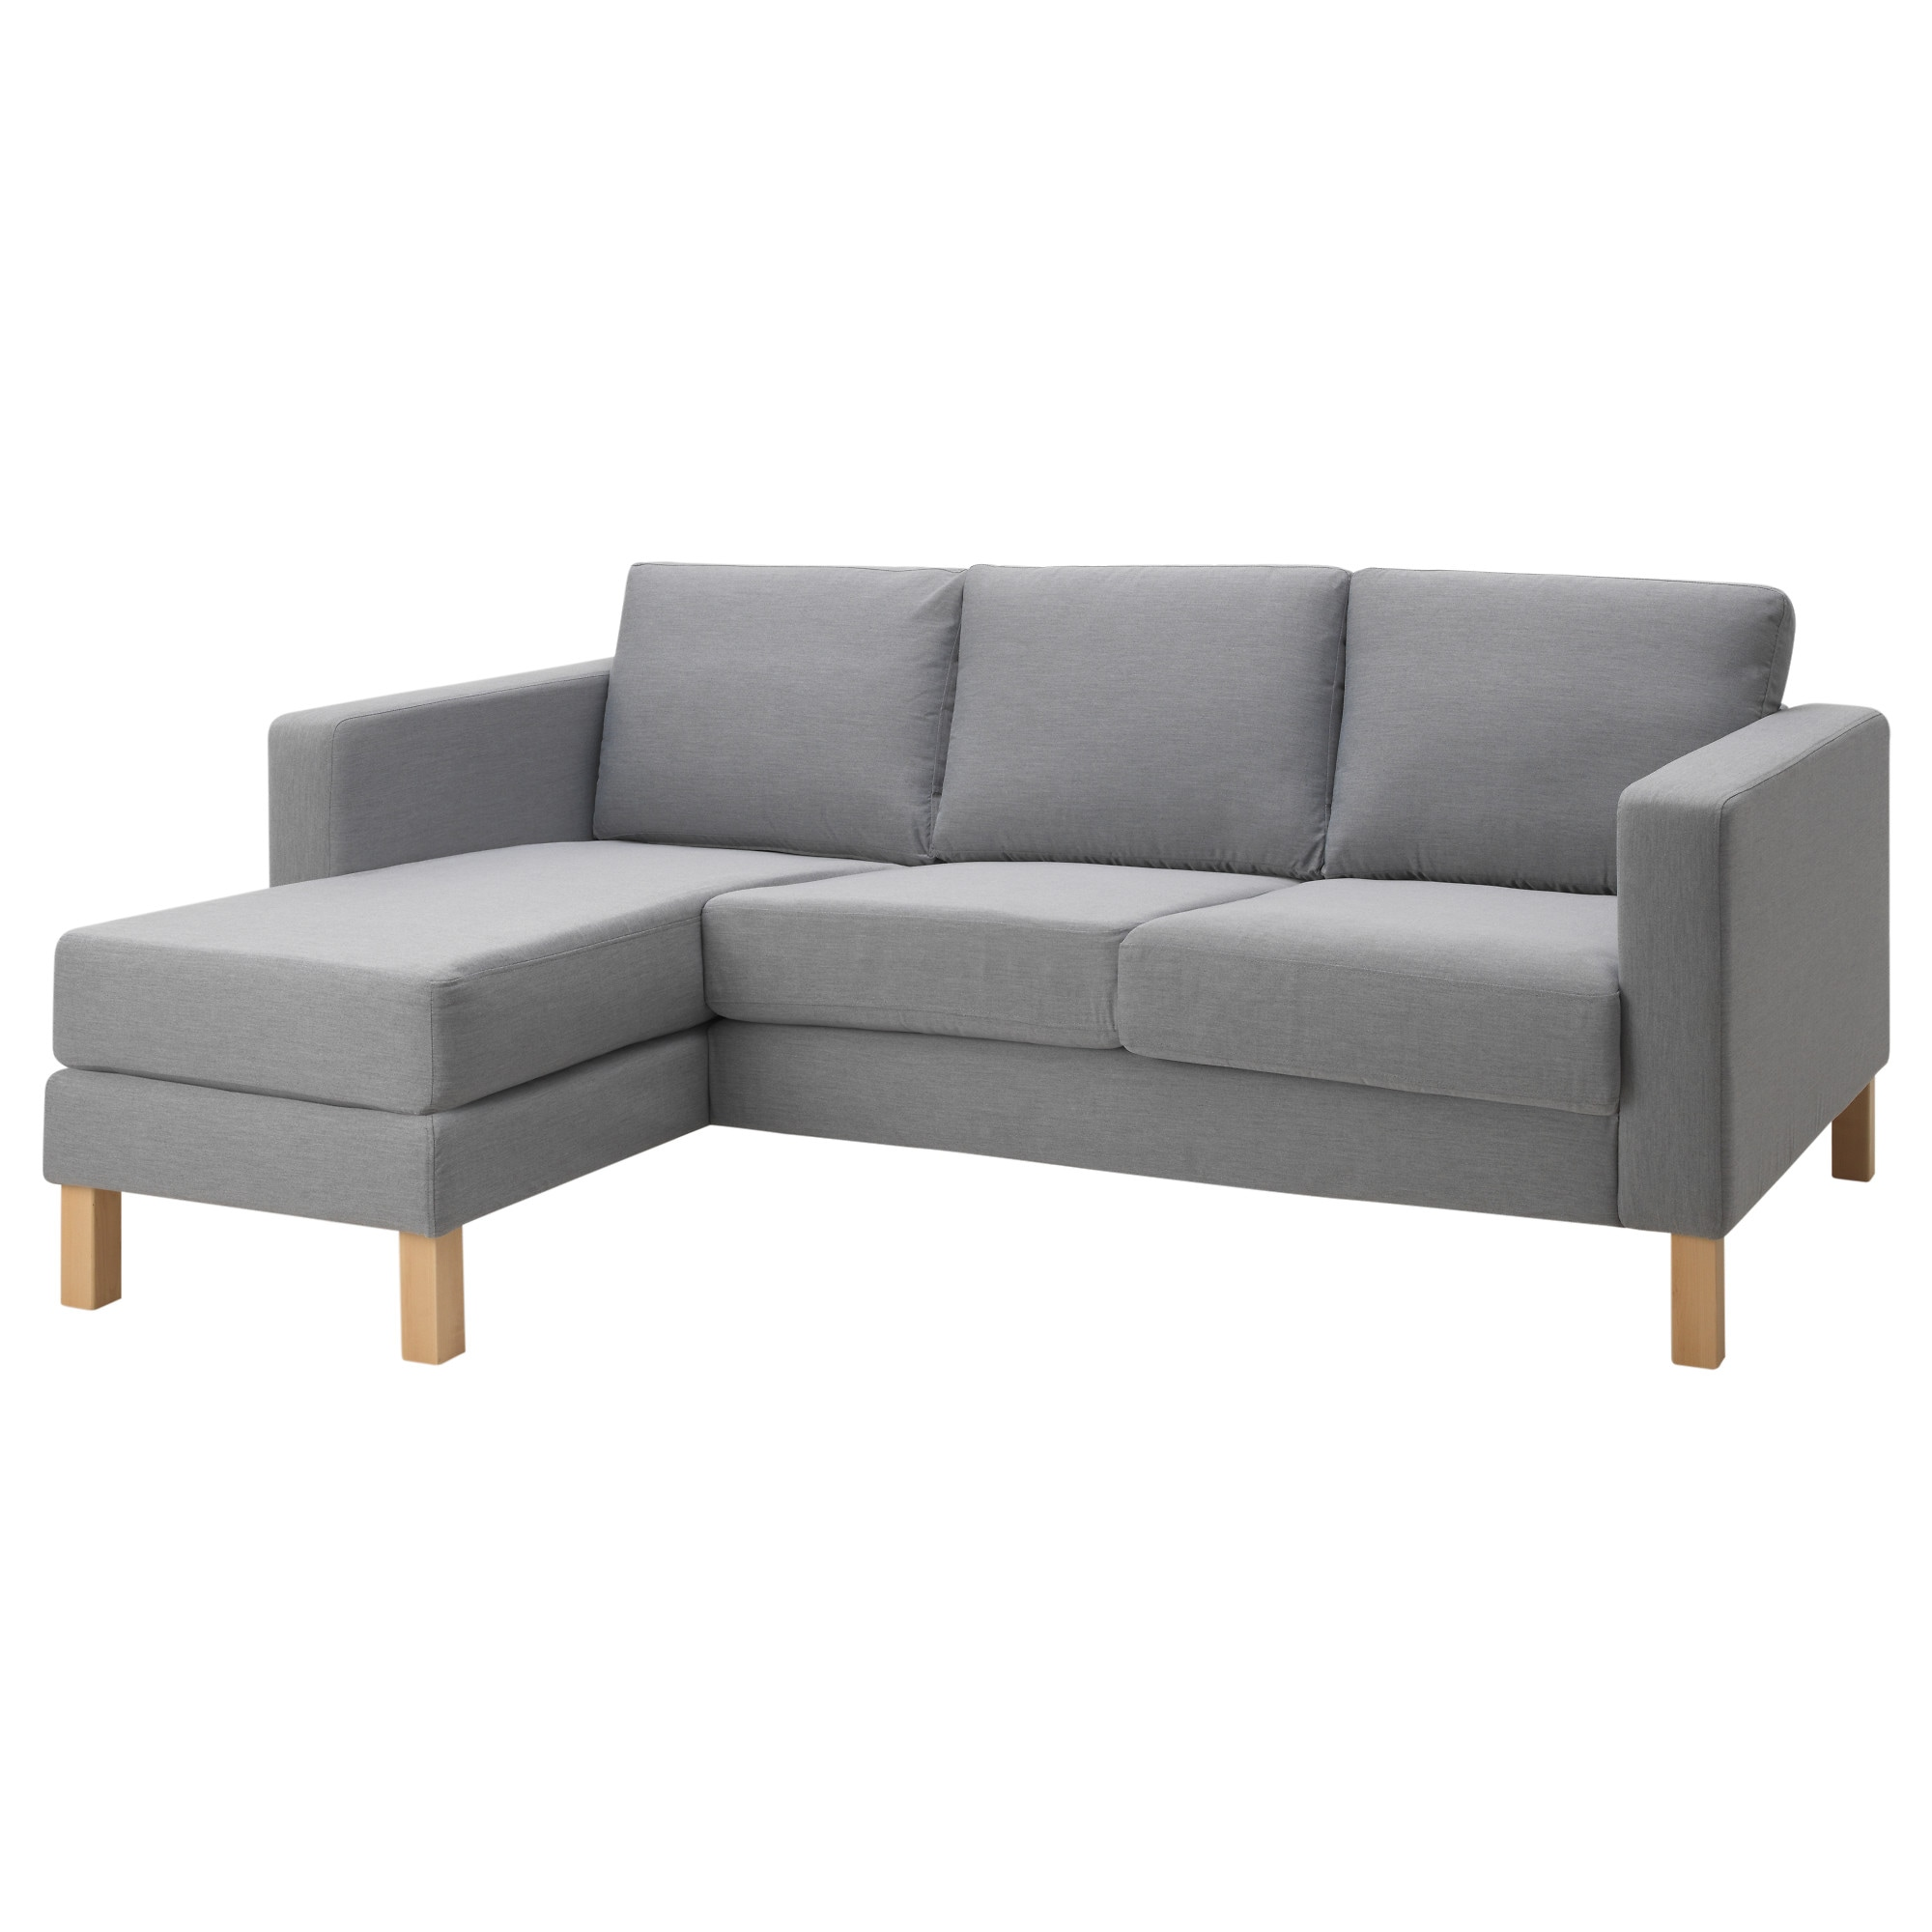 ikea chaise sofa chaise lounge sofa ikea ikea chaise. Black Bedroom Furniture Sets. Home Design Ideas